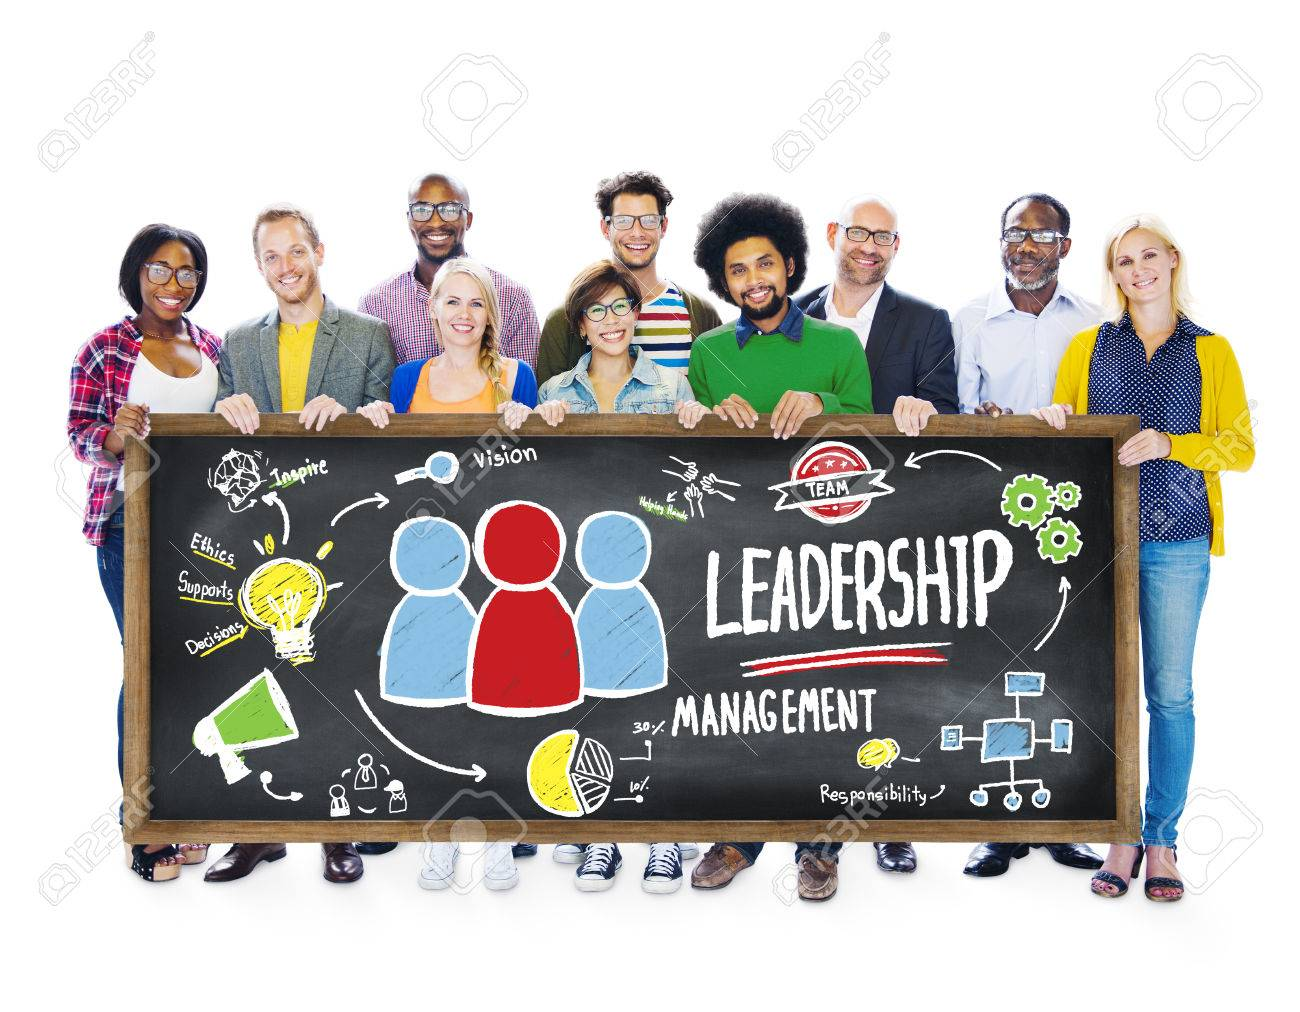 diversity casual people leadership management banner team support